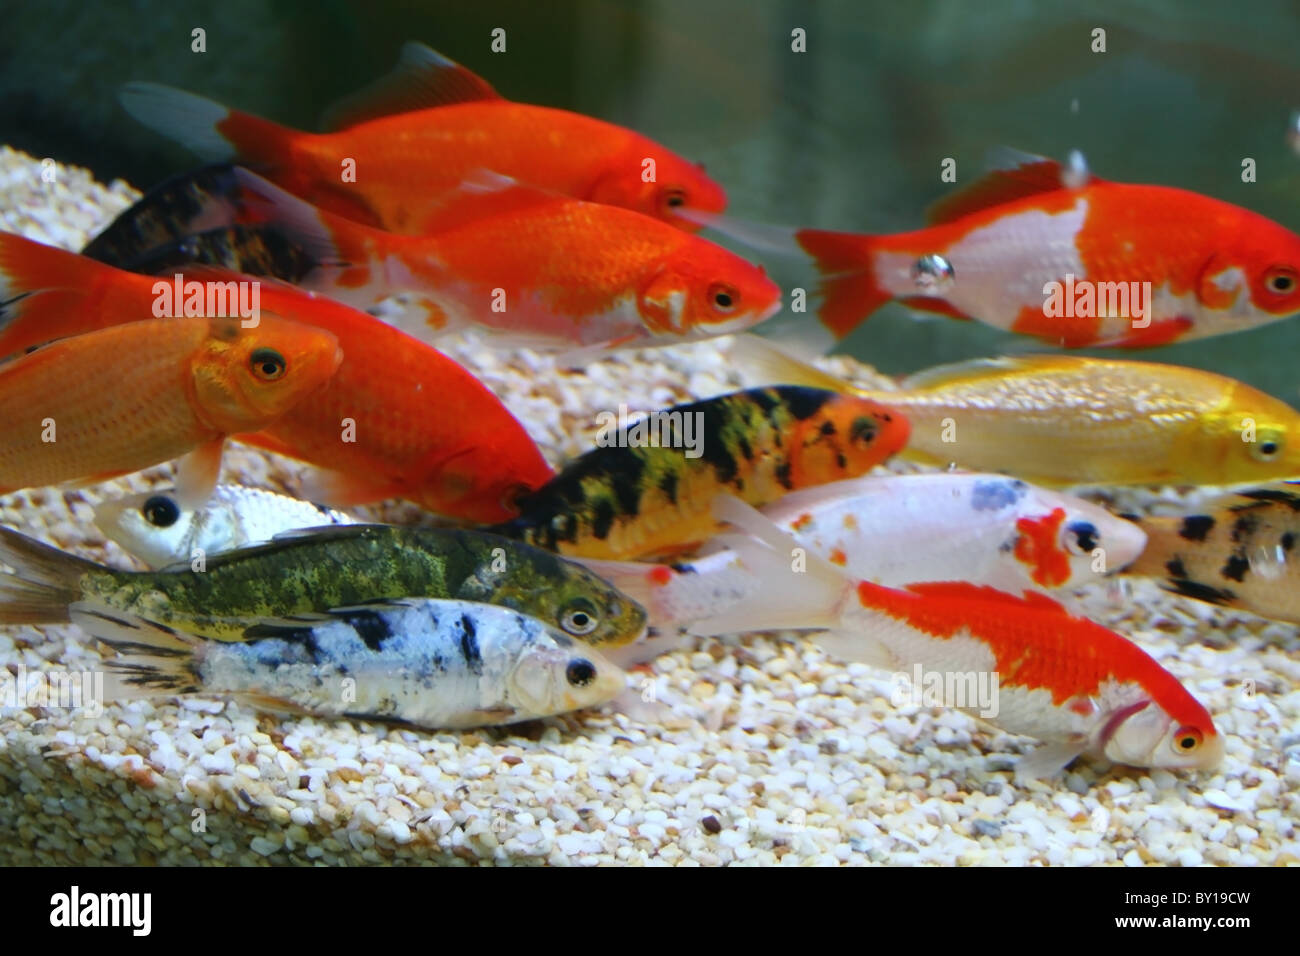 Big colorful Koi carp in a aquarium Stock Photo: 33835449 - Alamy